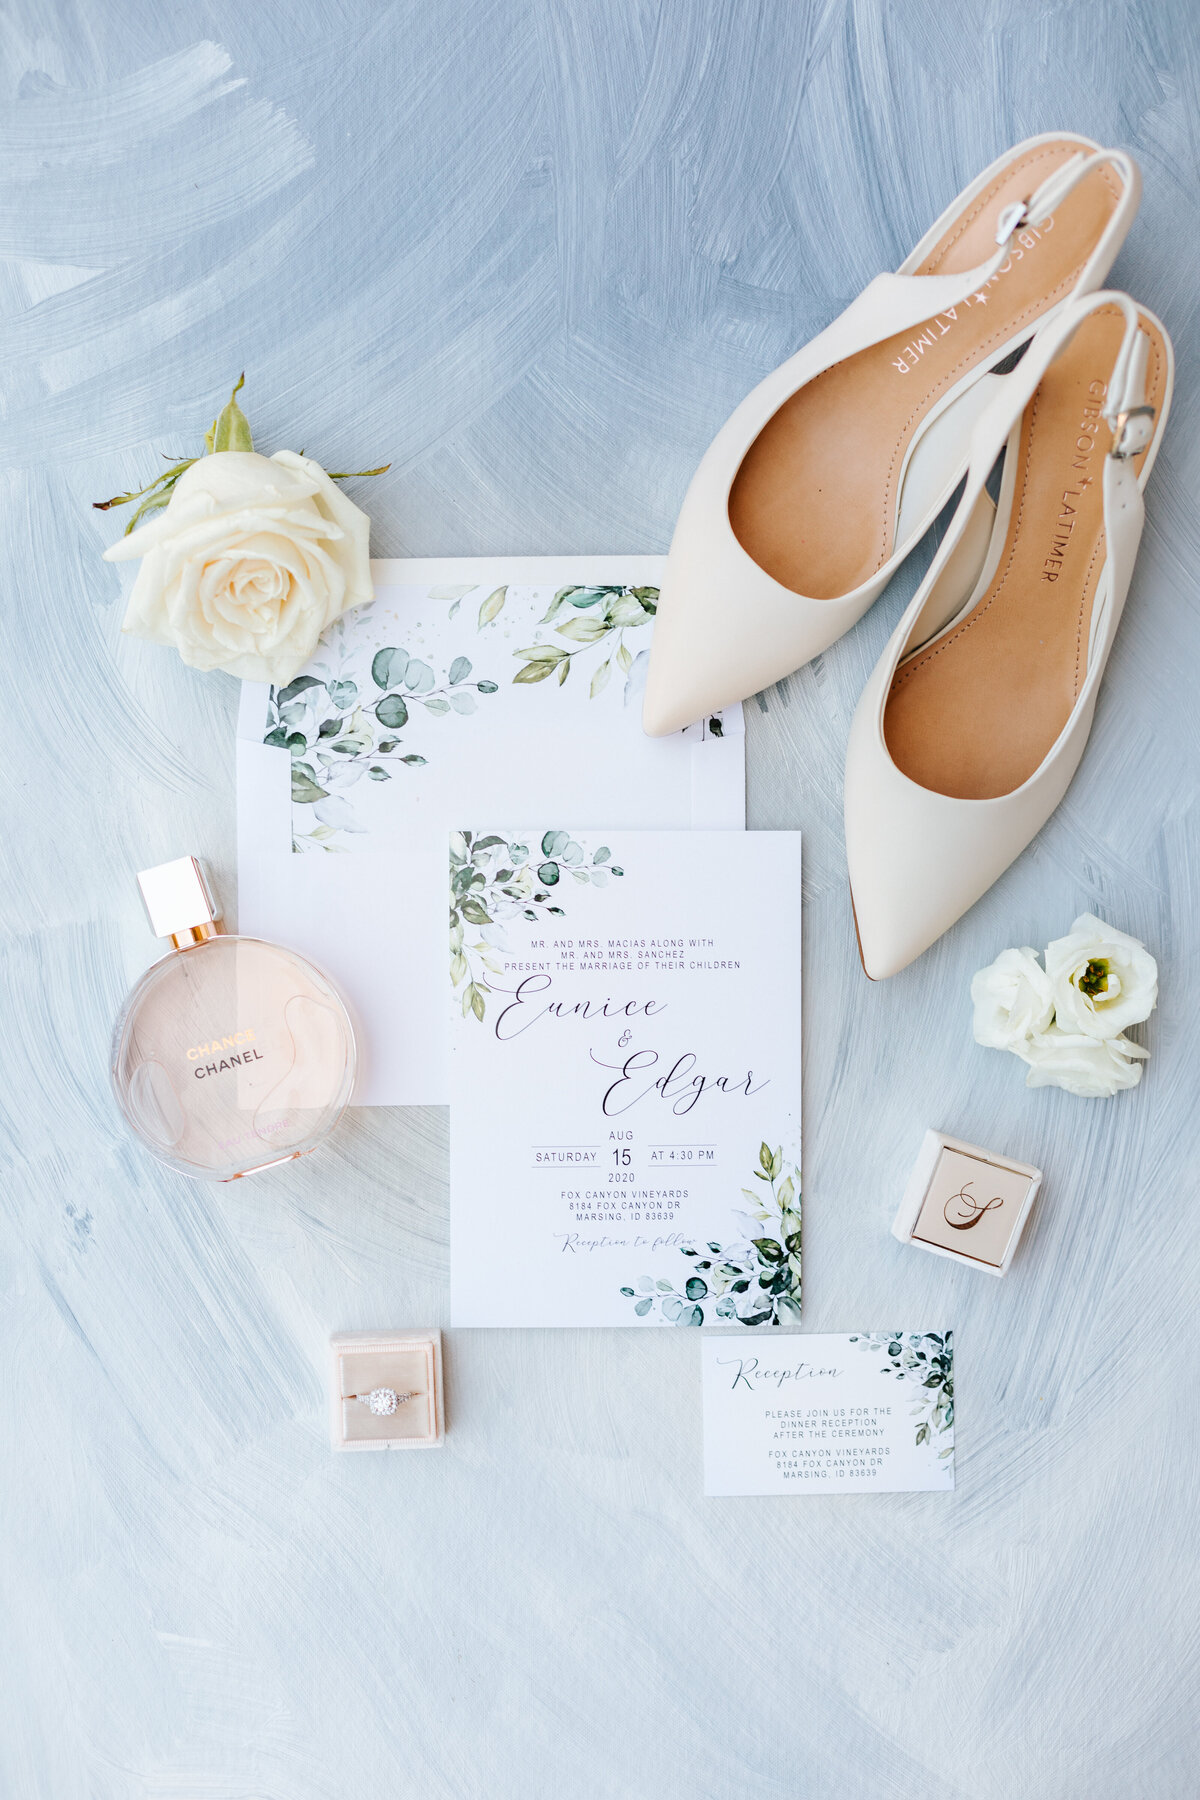 Wedding Details Flatlay against Dusty Blue Background with Chanel Perfume, Mrs. Box